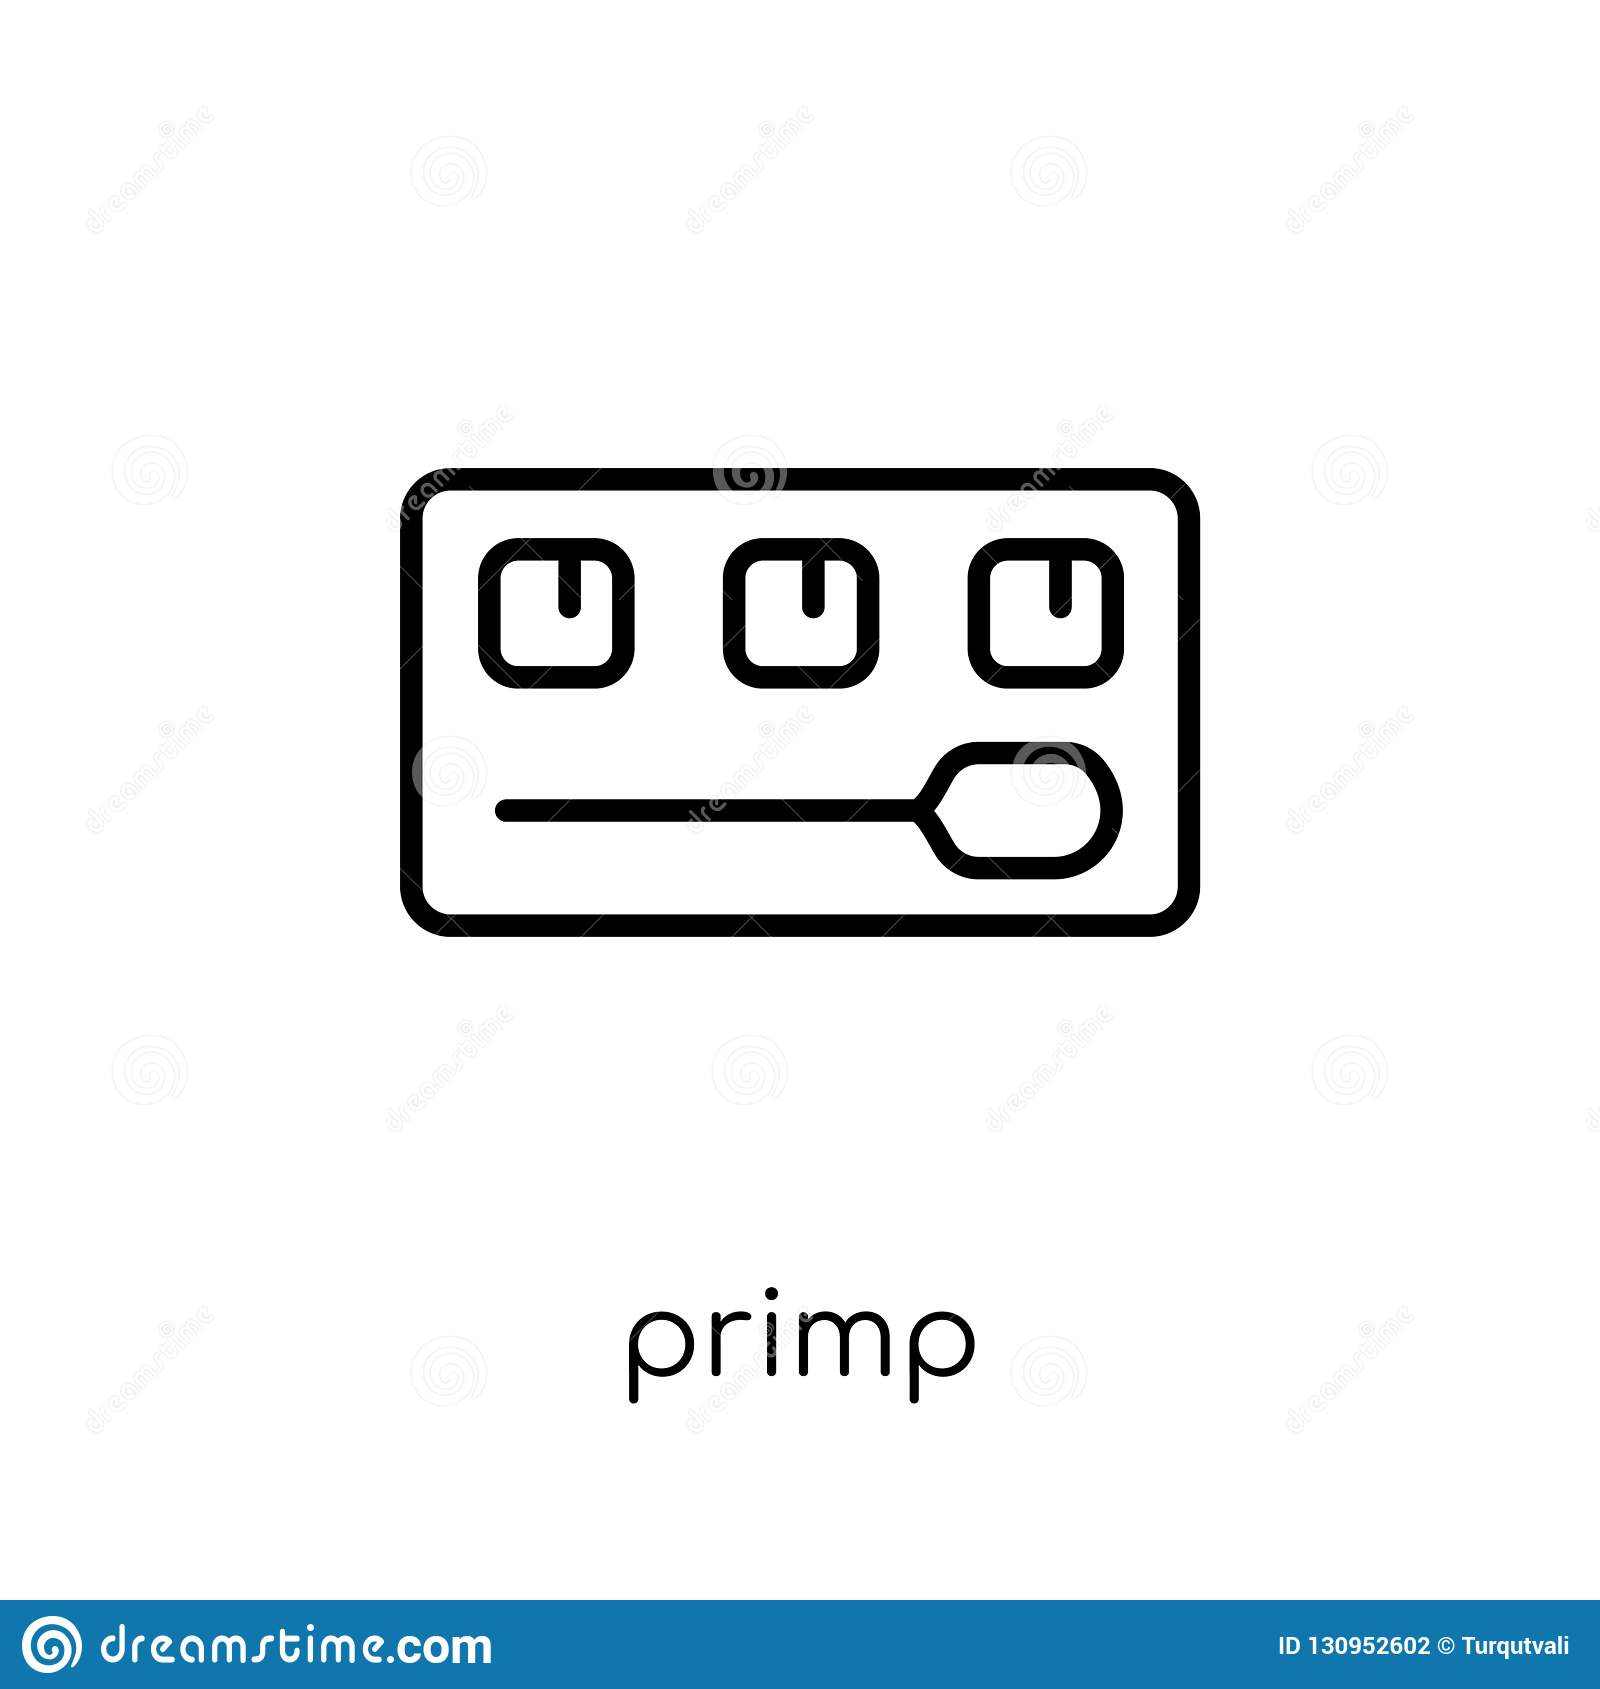 primp icon from Hygiene collection.